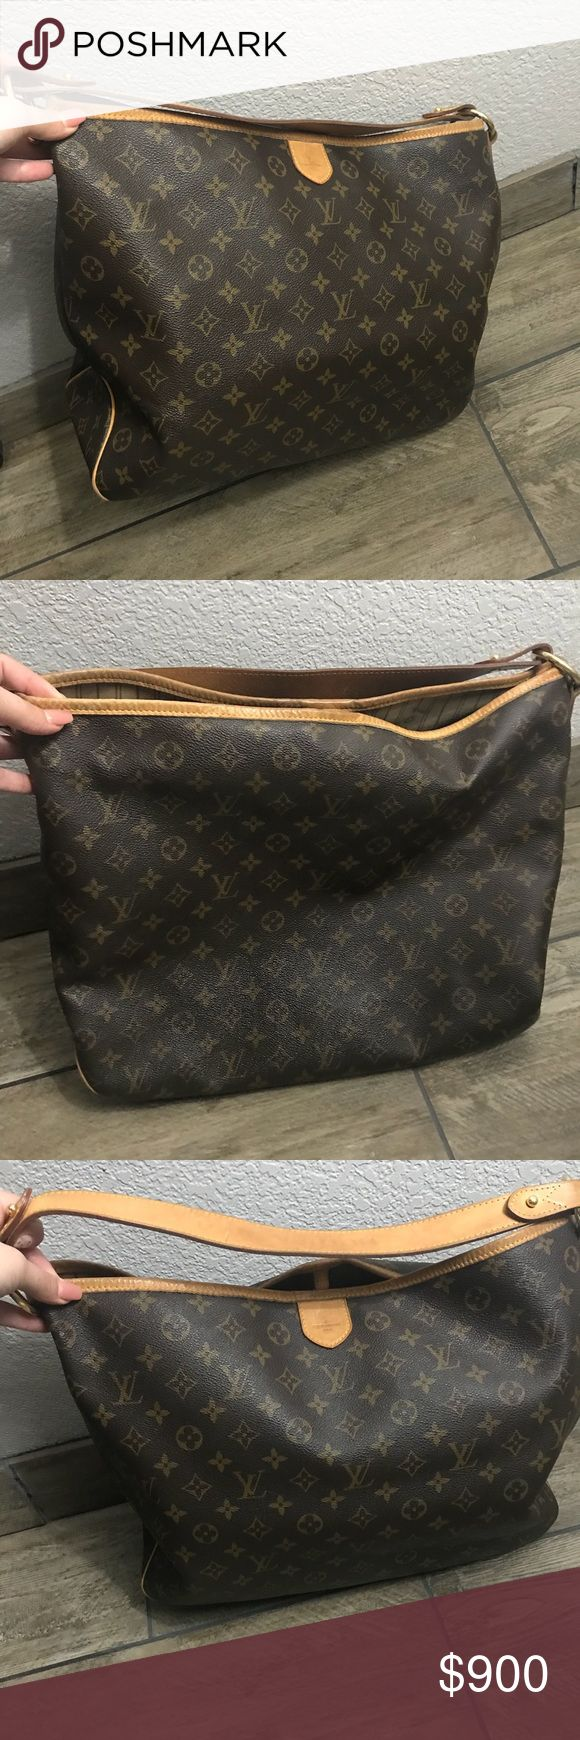 Louis Vuitton Monogram Delightful MM 100% Authentic, purchased at the Louis Vuitton store located in the South Coast Plaza Mall in Costa Mesa CA.  Condition: Good Comes with Box and dust bag  Receipt not included Louis Vuitton Bags Shoulder Bags